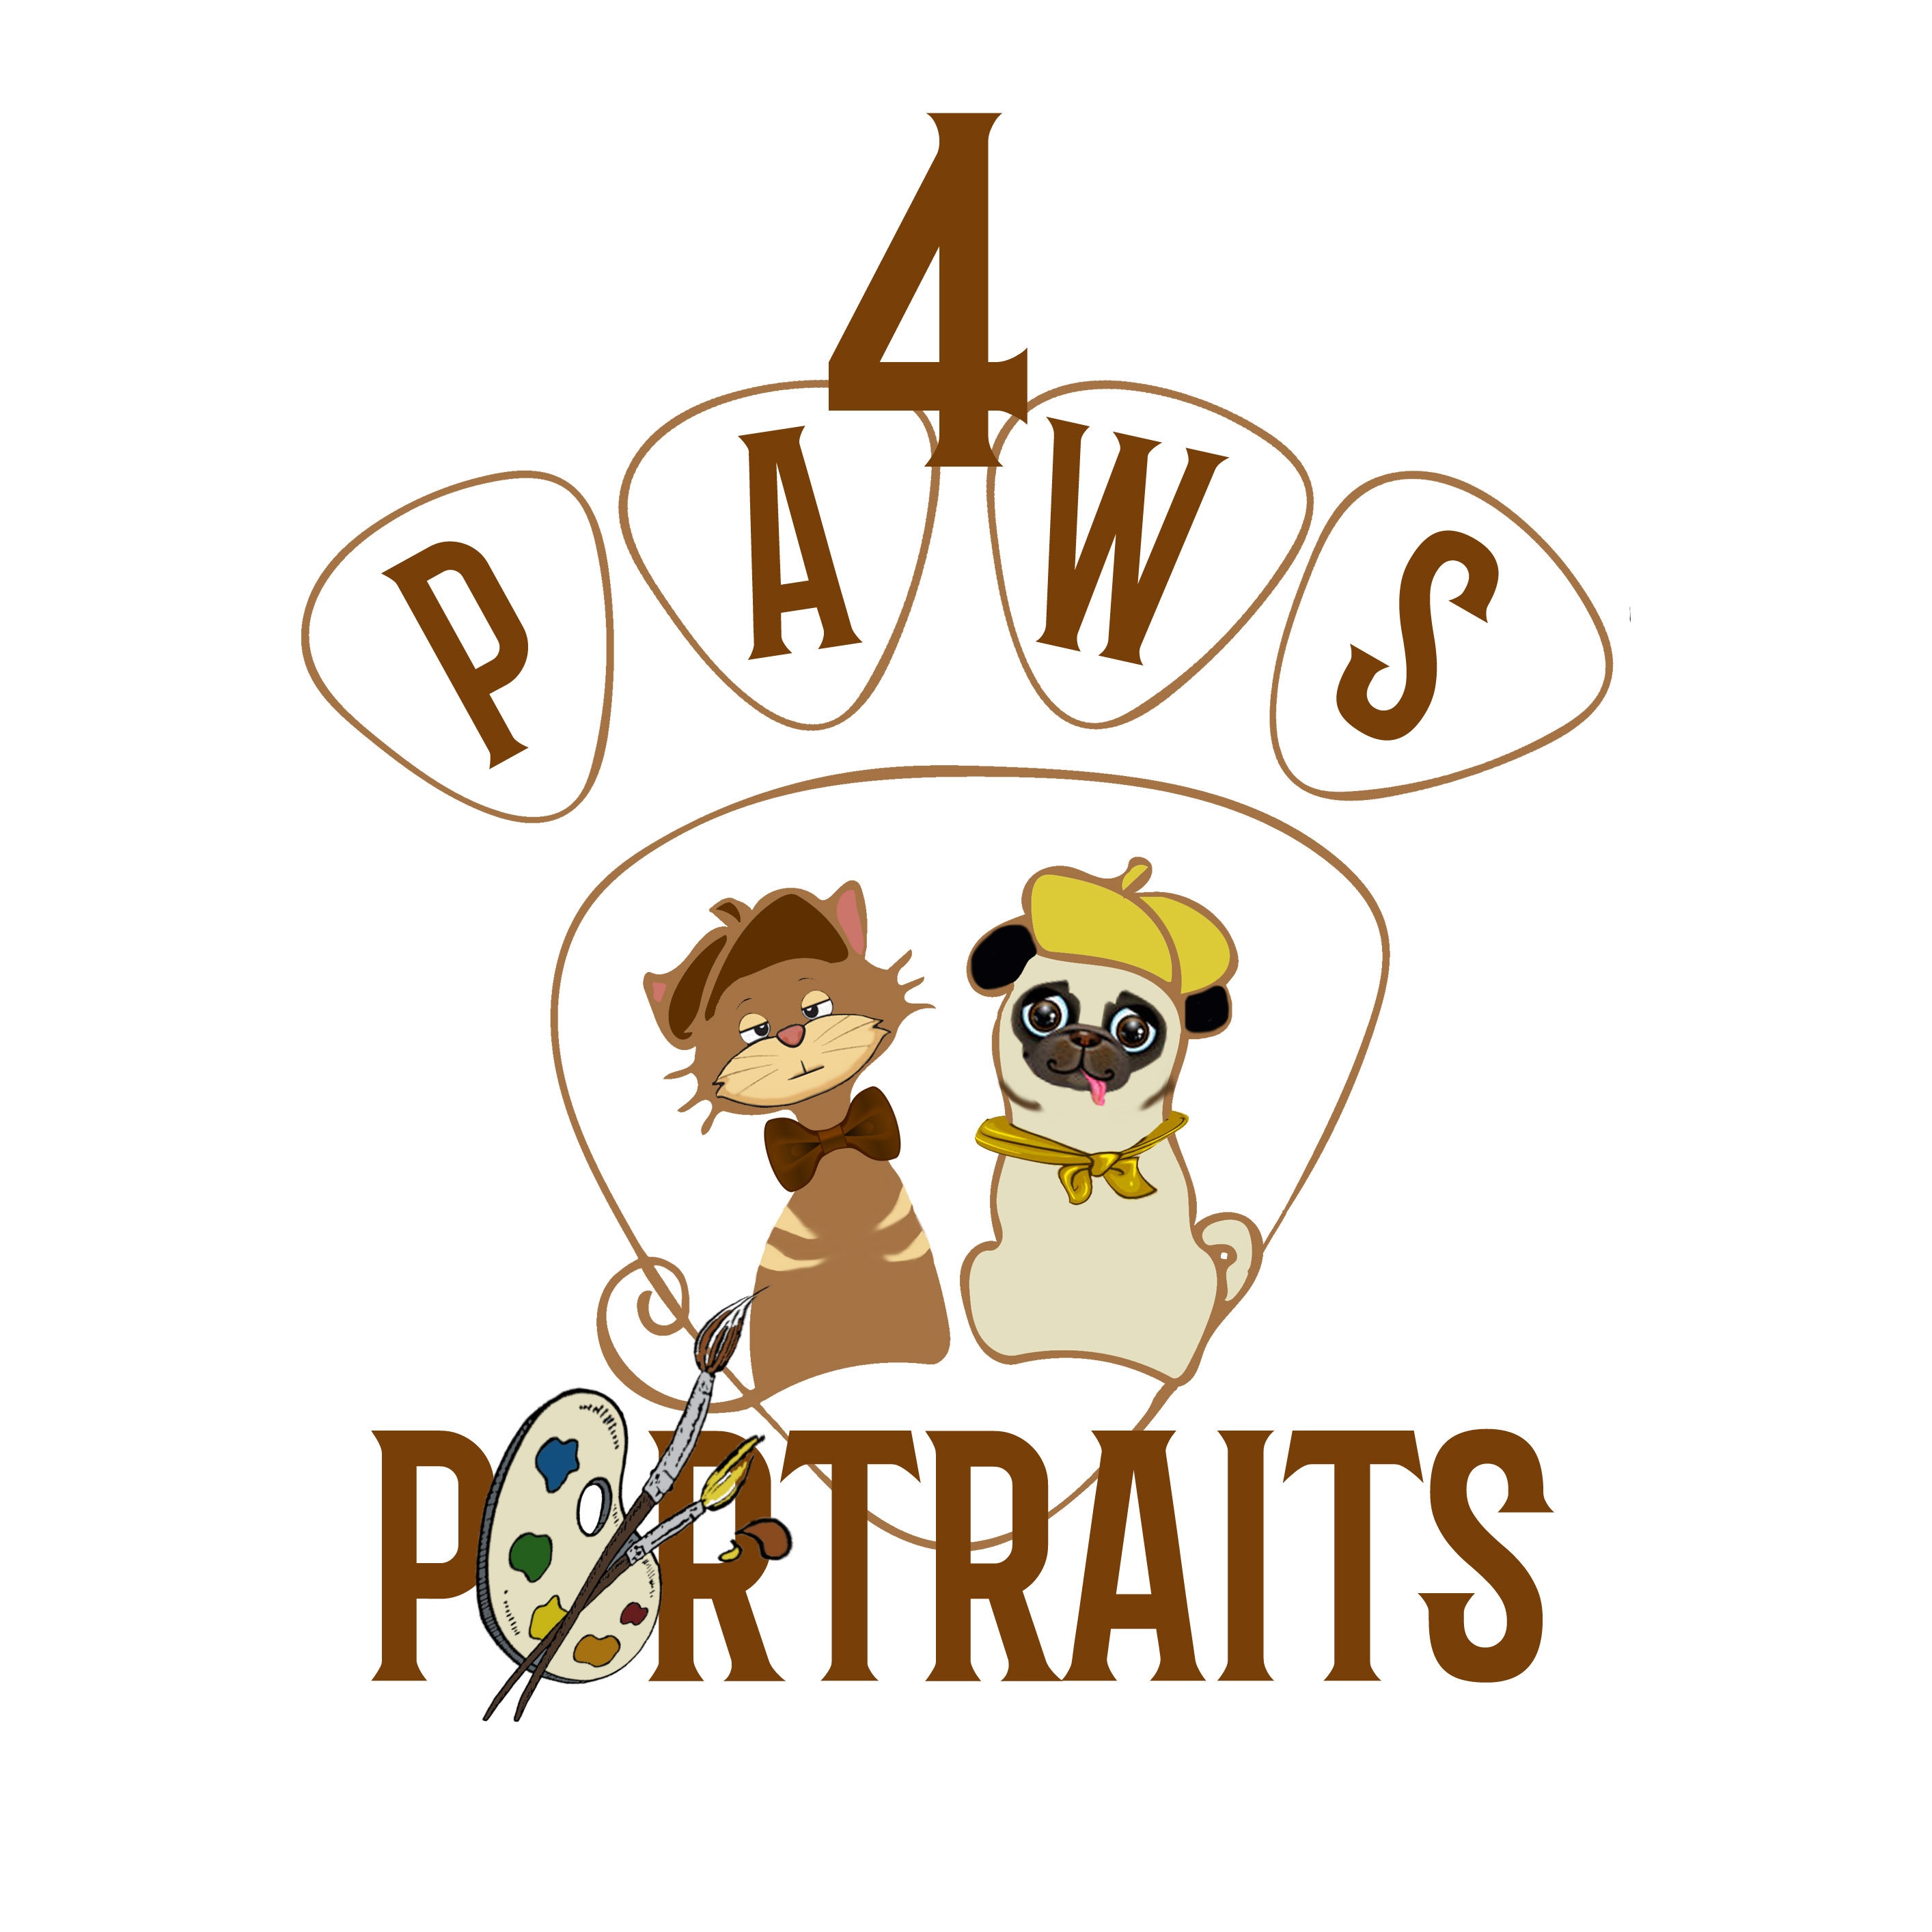 Memorial Pet Loss Products-4 Paws Portraits